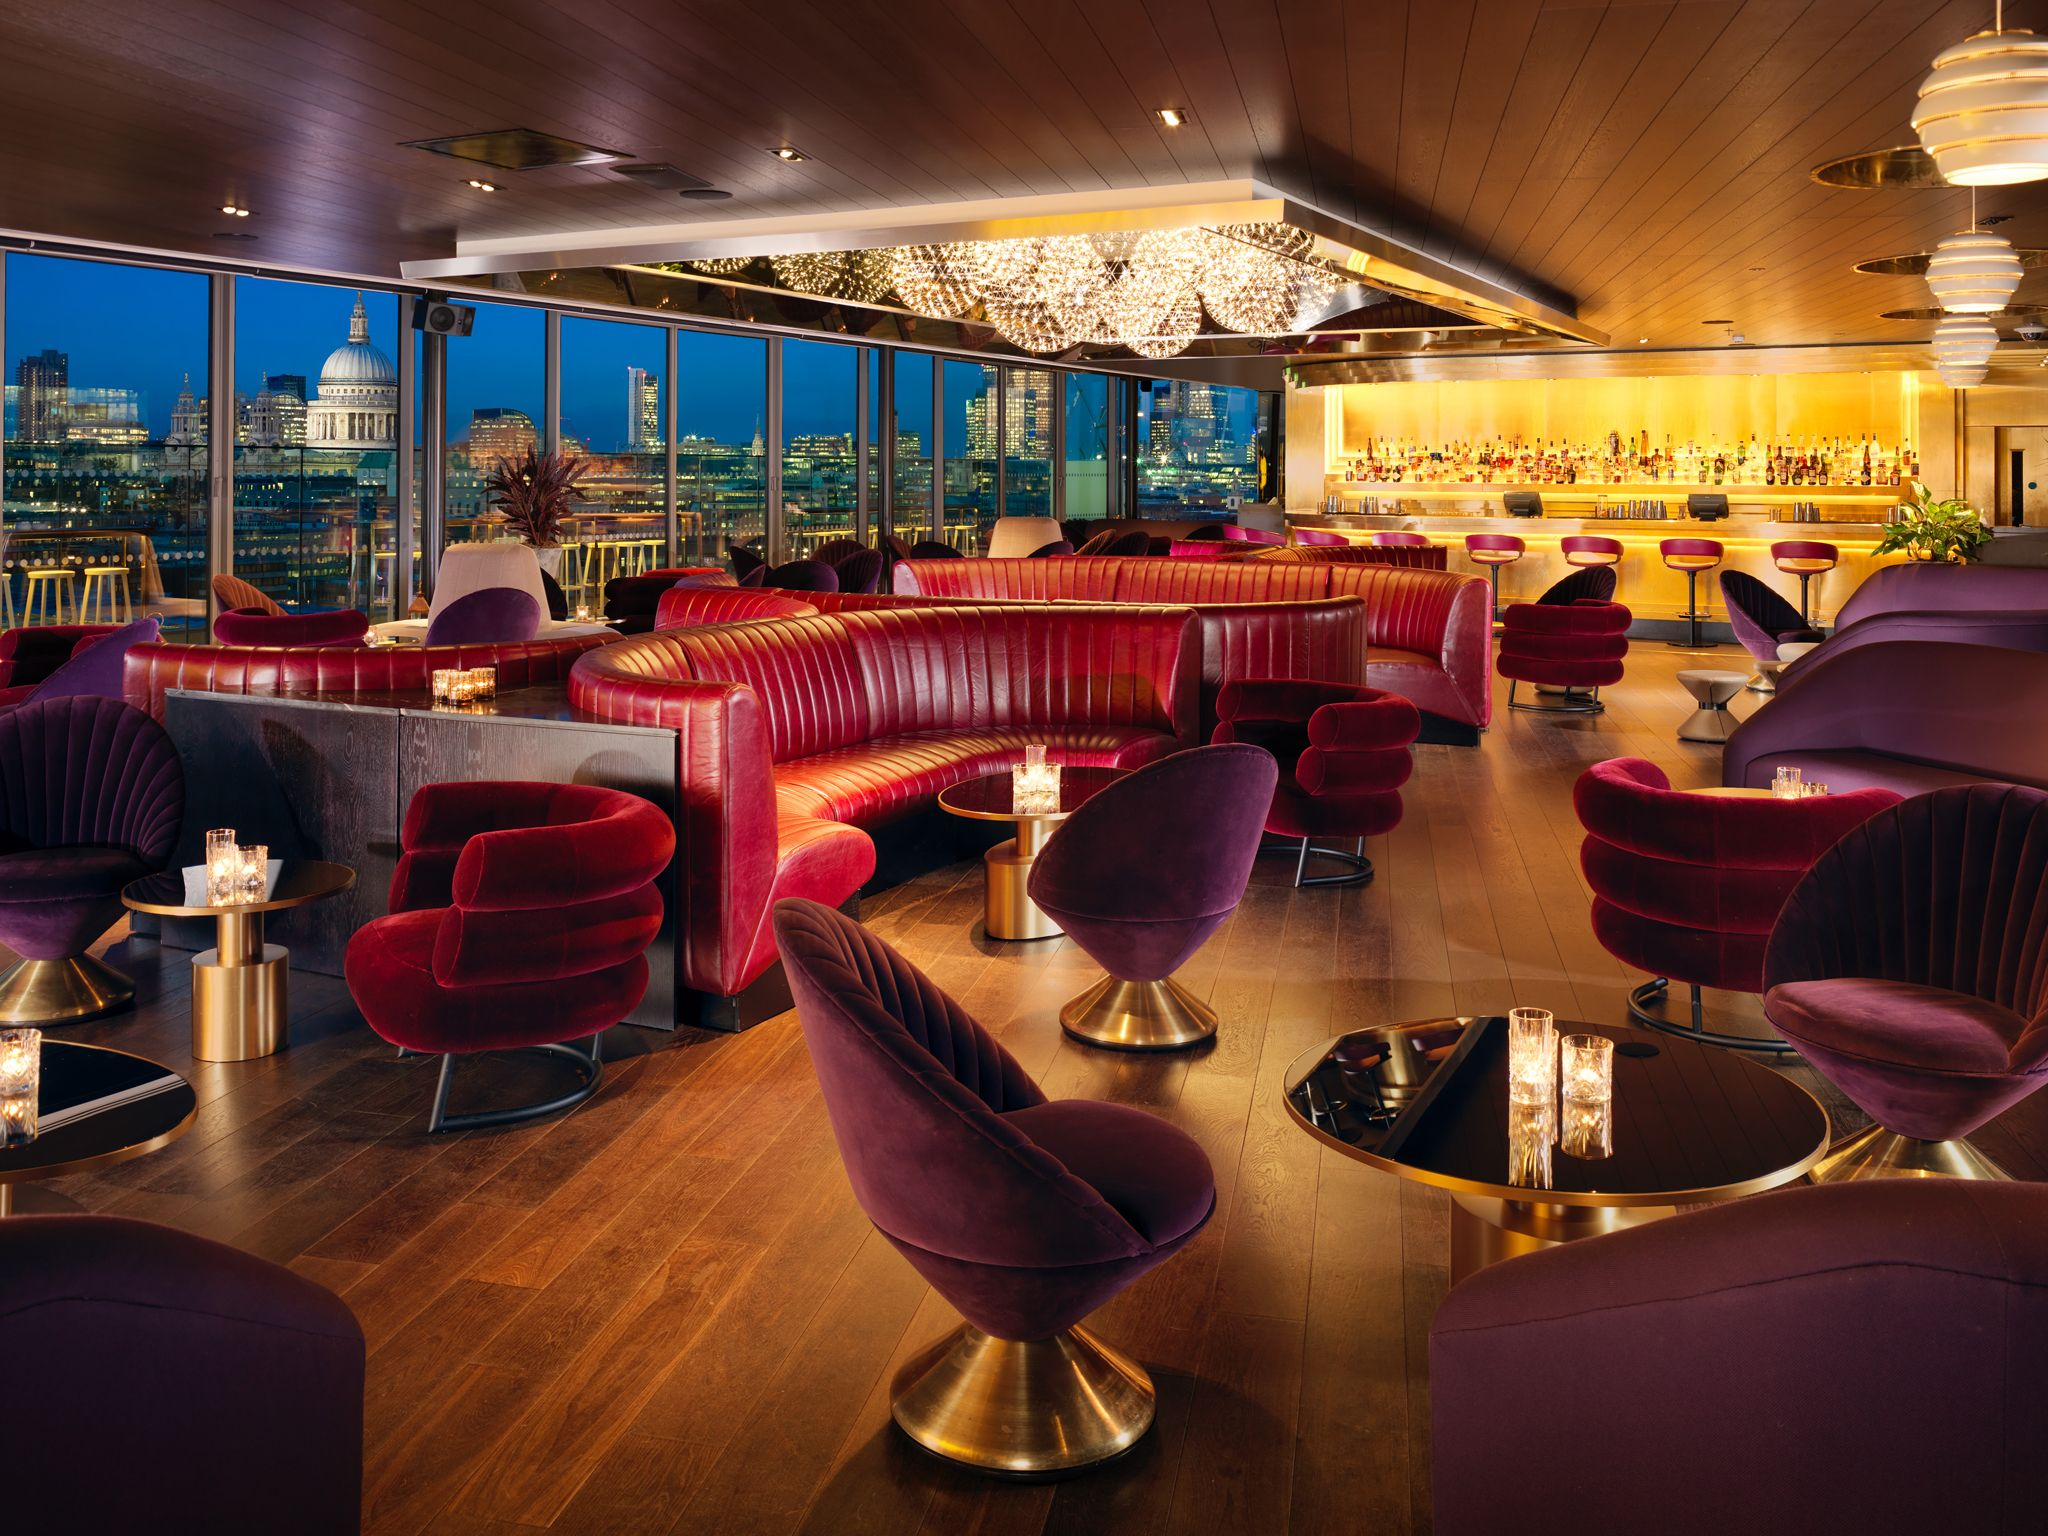 12th Knot Bars And Pubs In South Bank London Mondrian London Hotel Mondrian London London Hotels